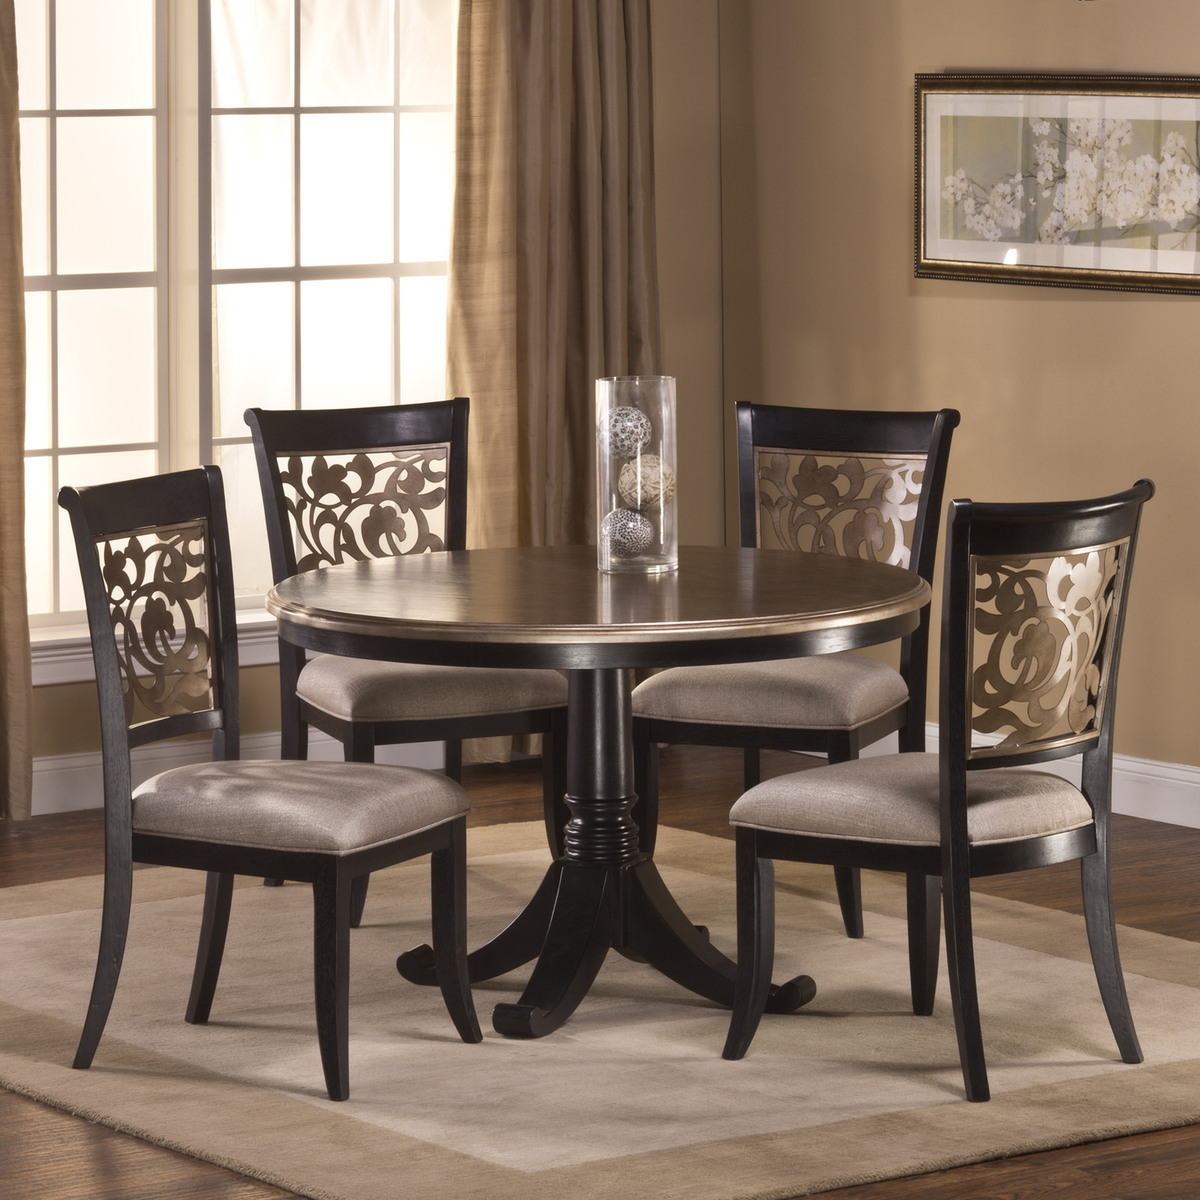 Casual Dining Room Set: Hillsdale Furniture Bennington 5pc Dining Room Set In